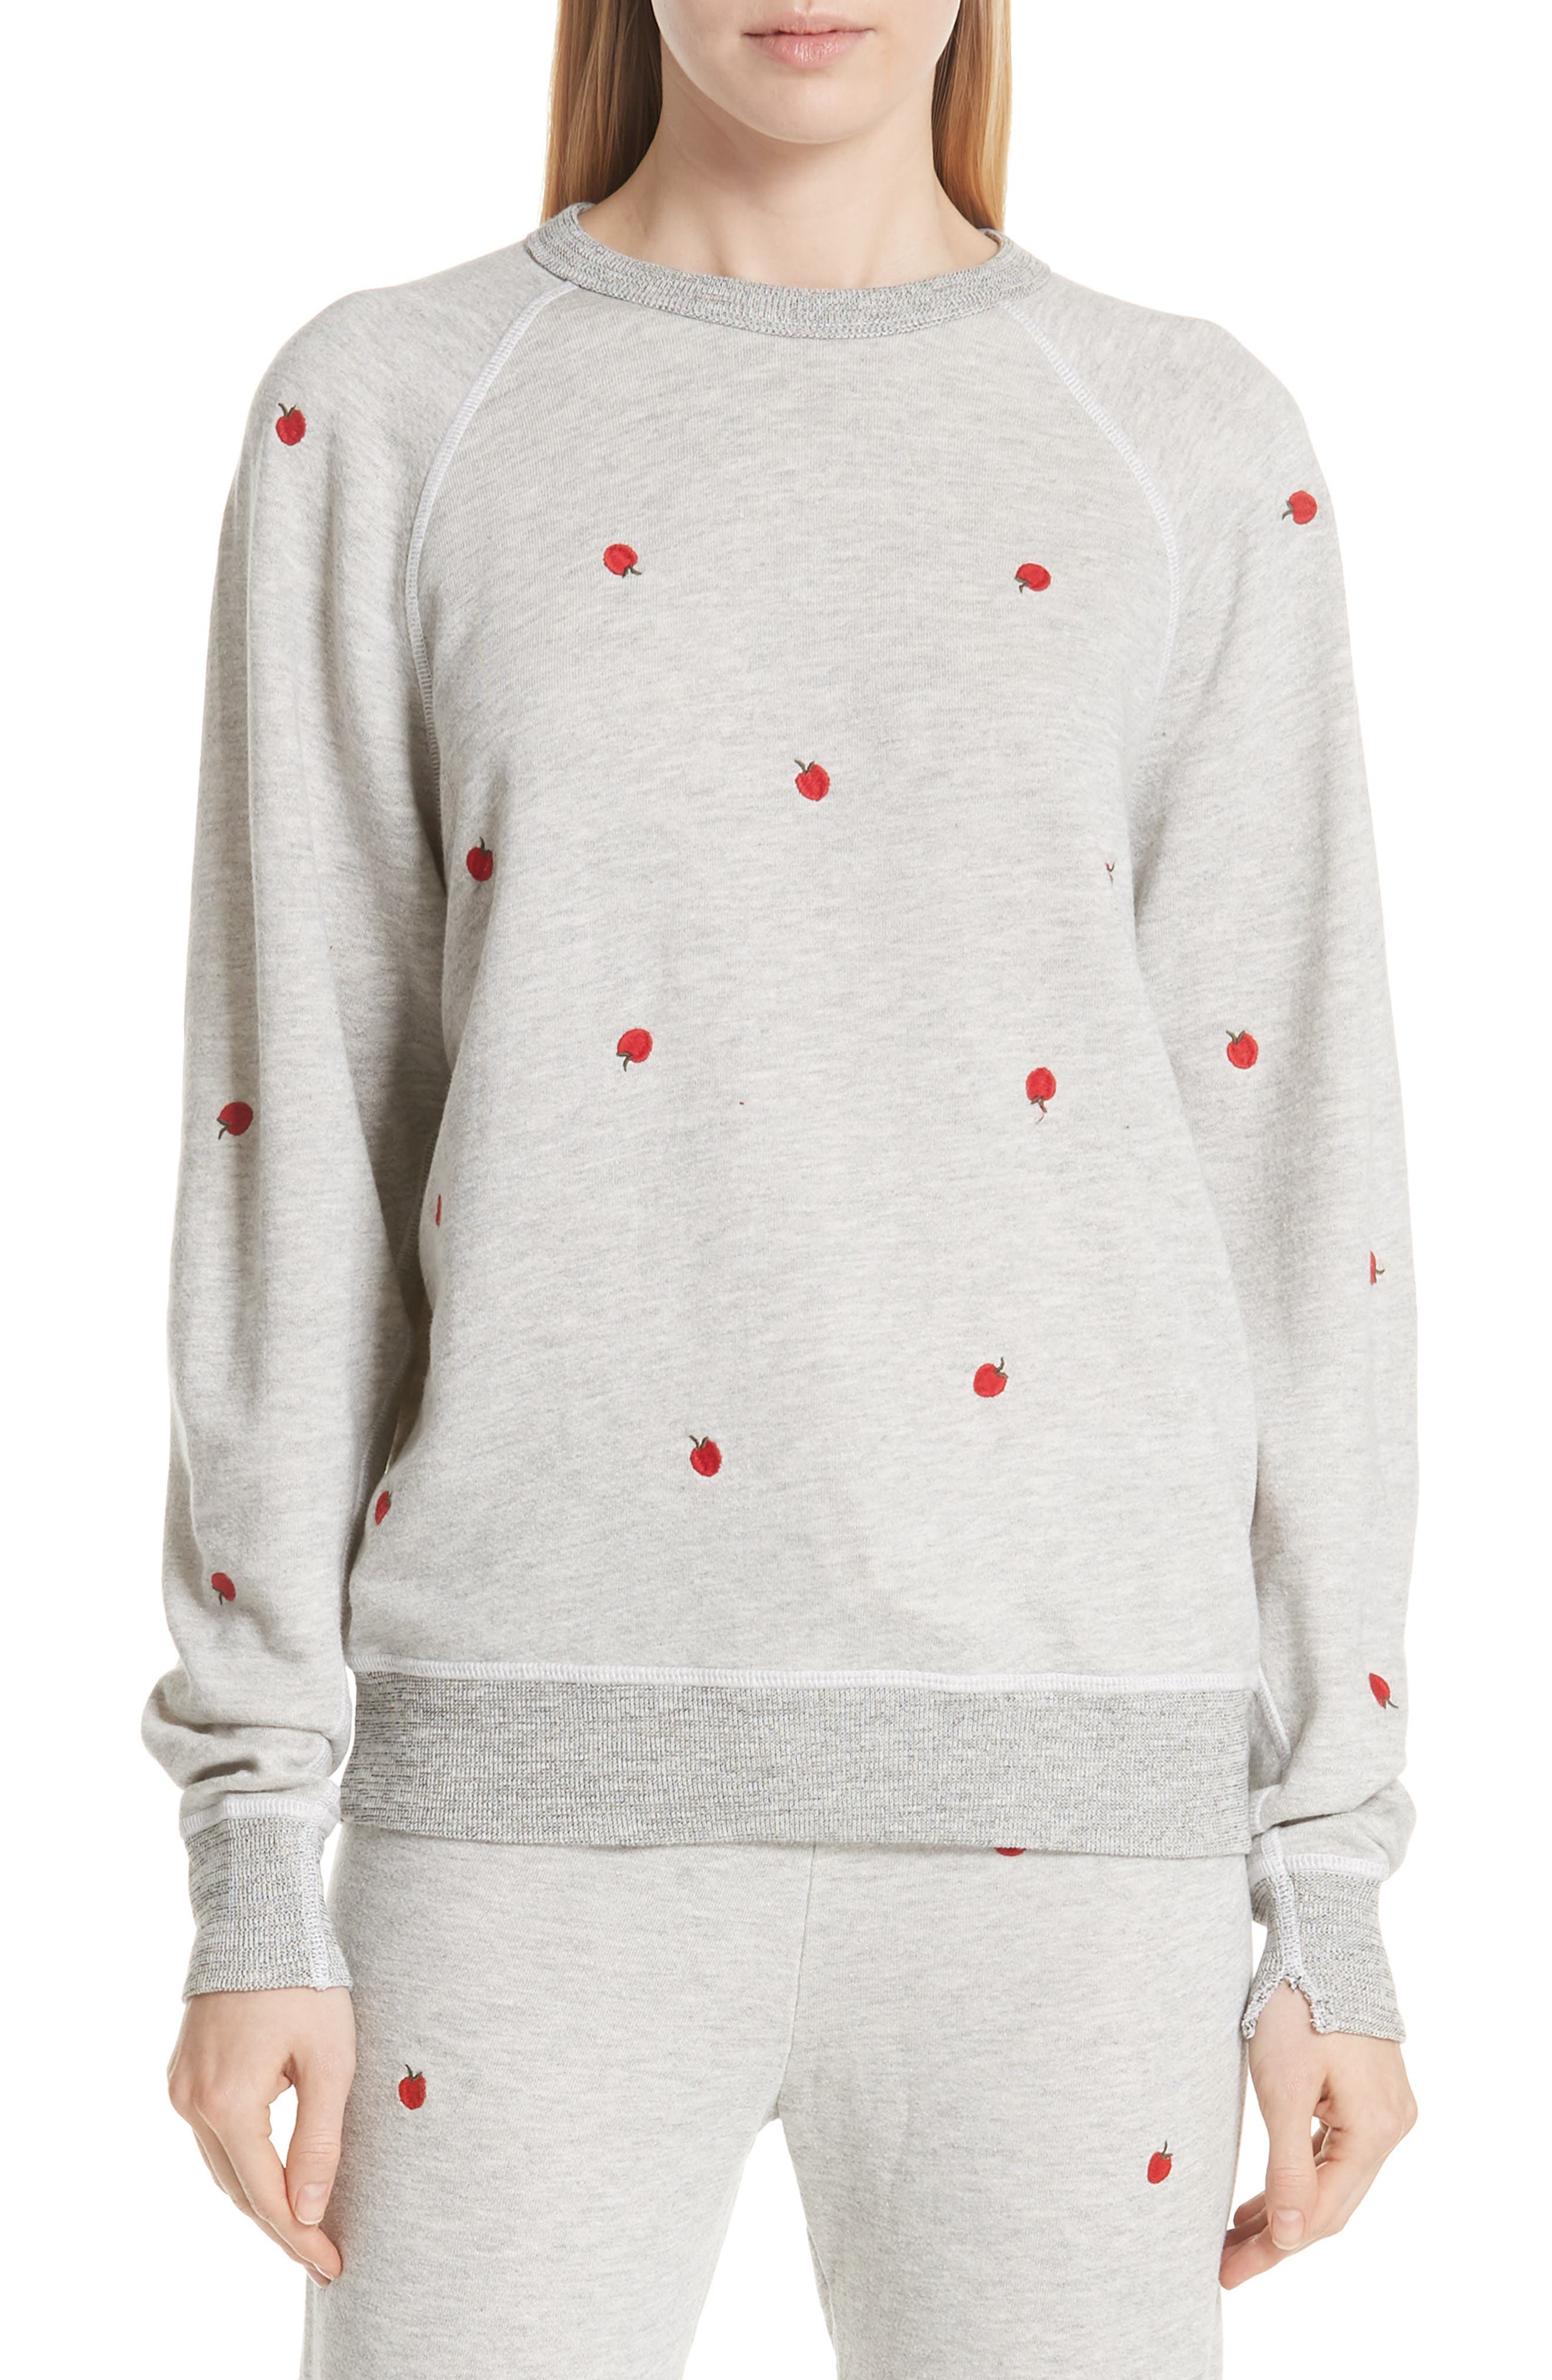 College Sweatshirt,                             Main thumbnail 1, color,                             Light Heather Grey/ Red Apples